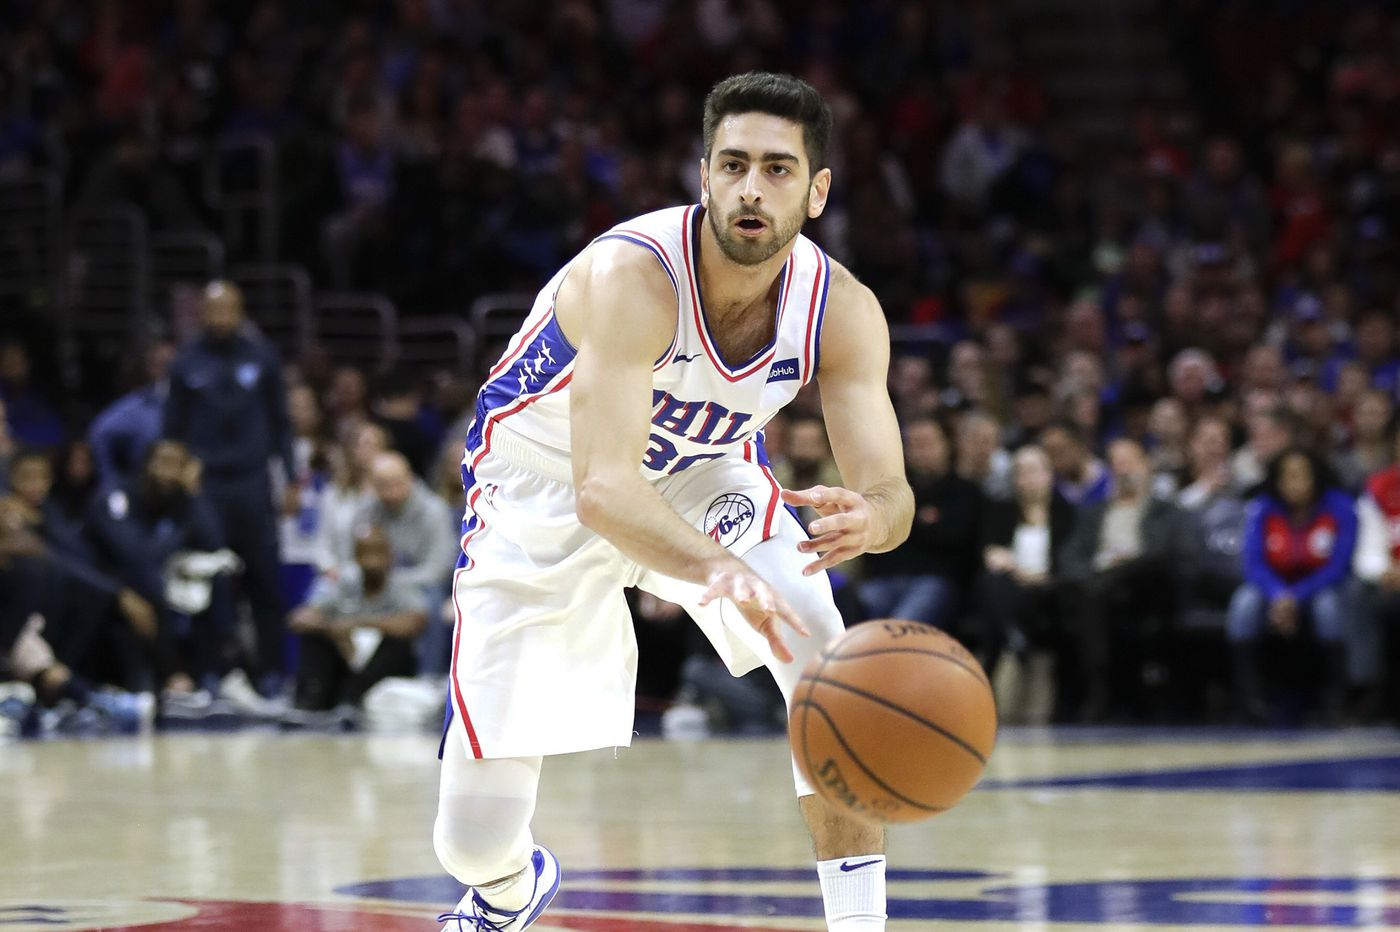 Sixers' Furkan Korkmaz shining with increased minutes